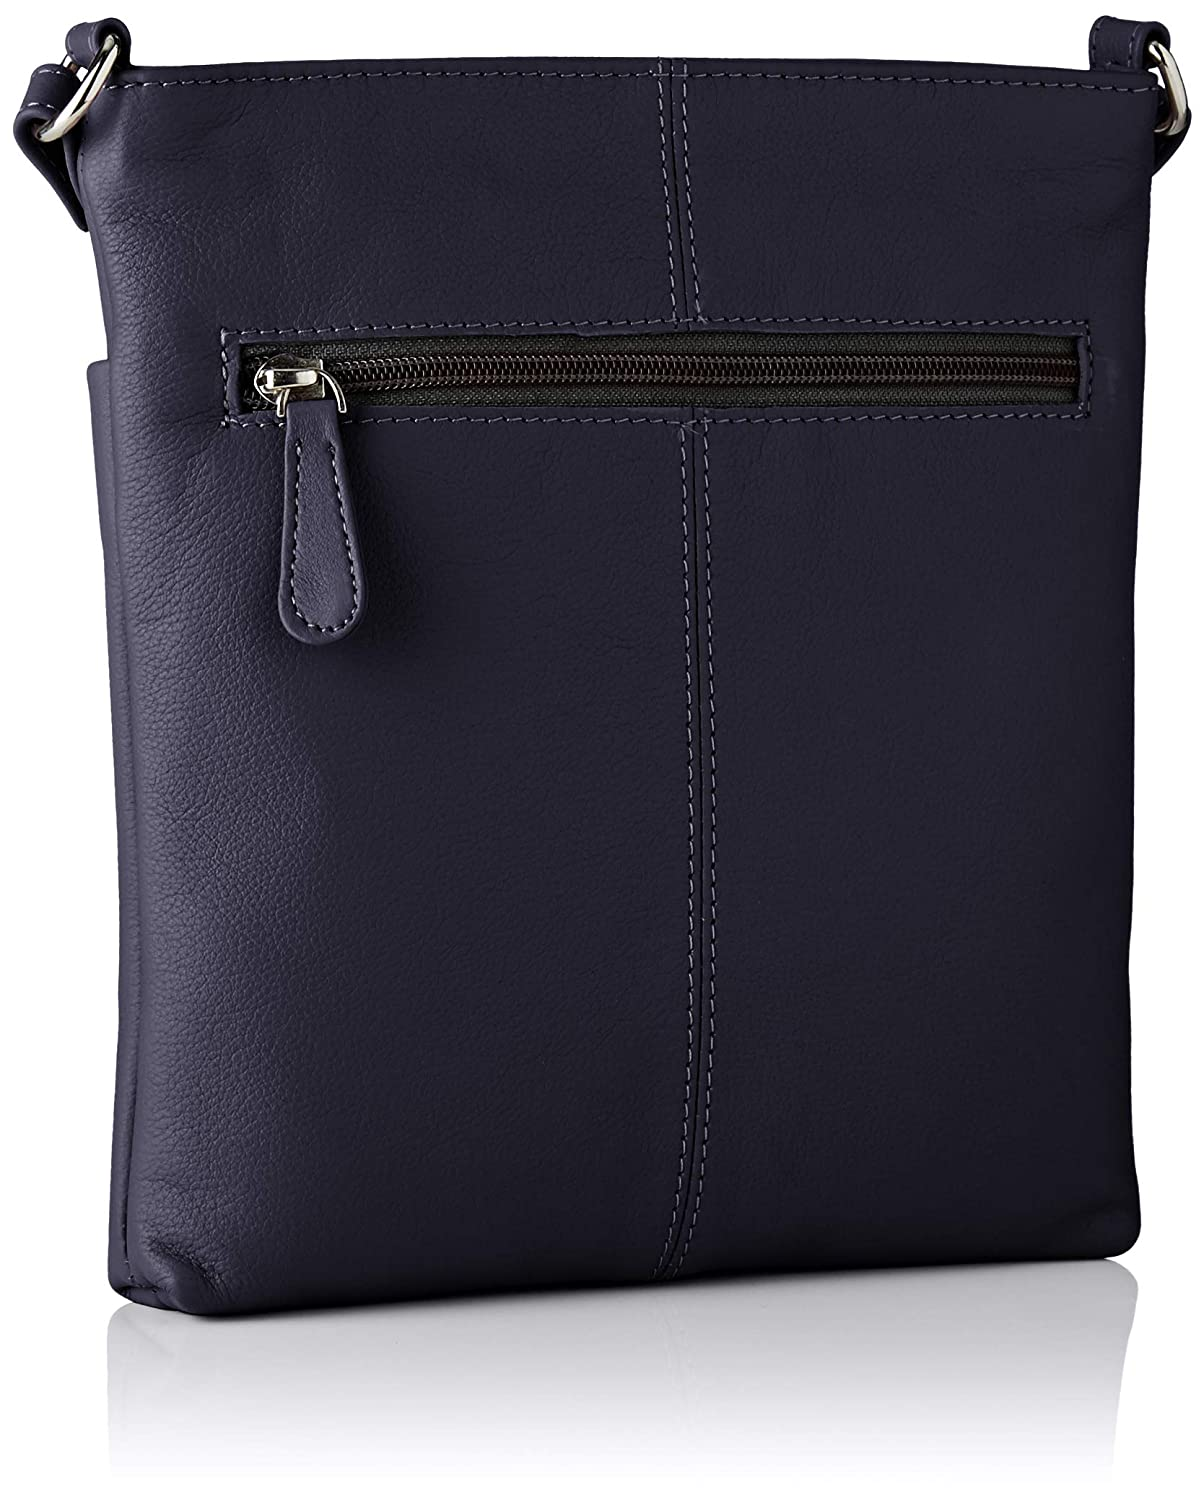 2f95af2ad Hotter Women's Verne Cross-Body Bag Blue (Navy): Amazon.co.uk: Shoes & Bags